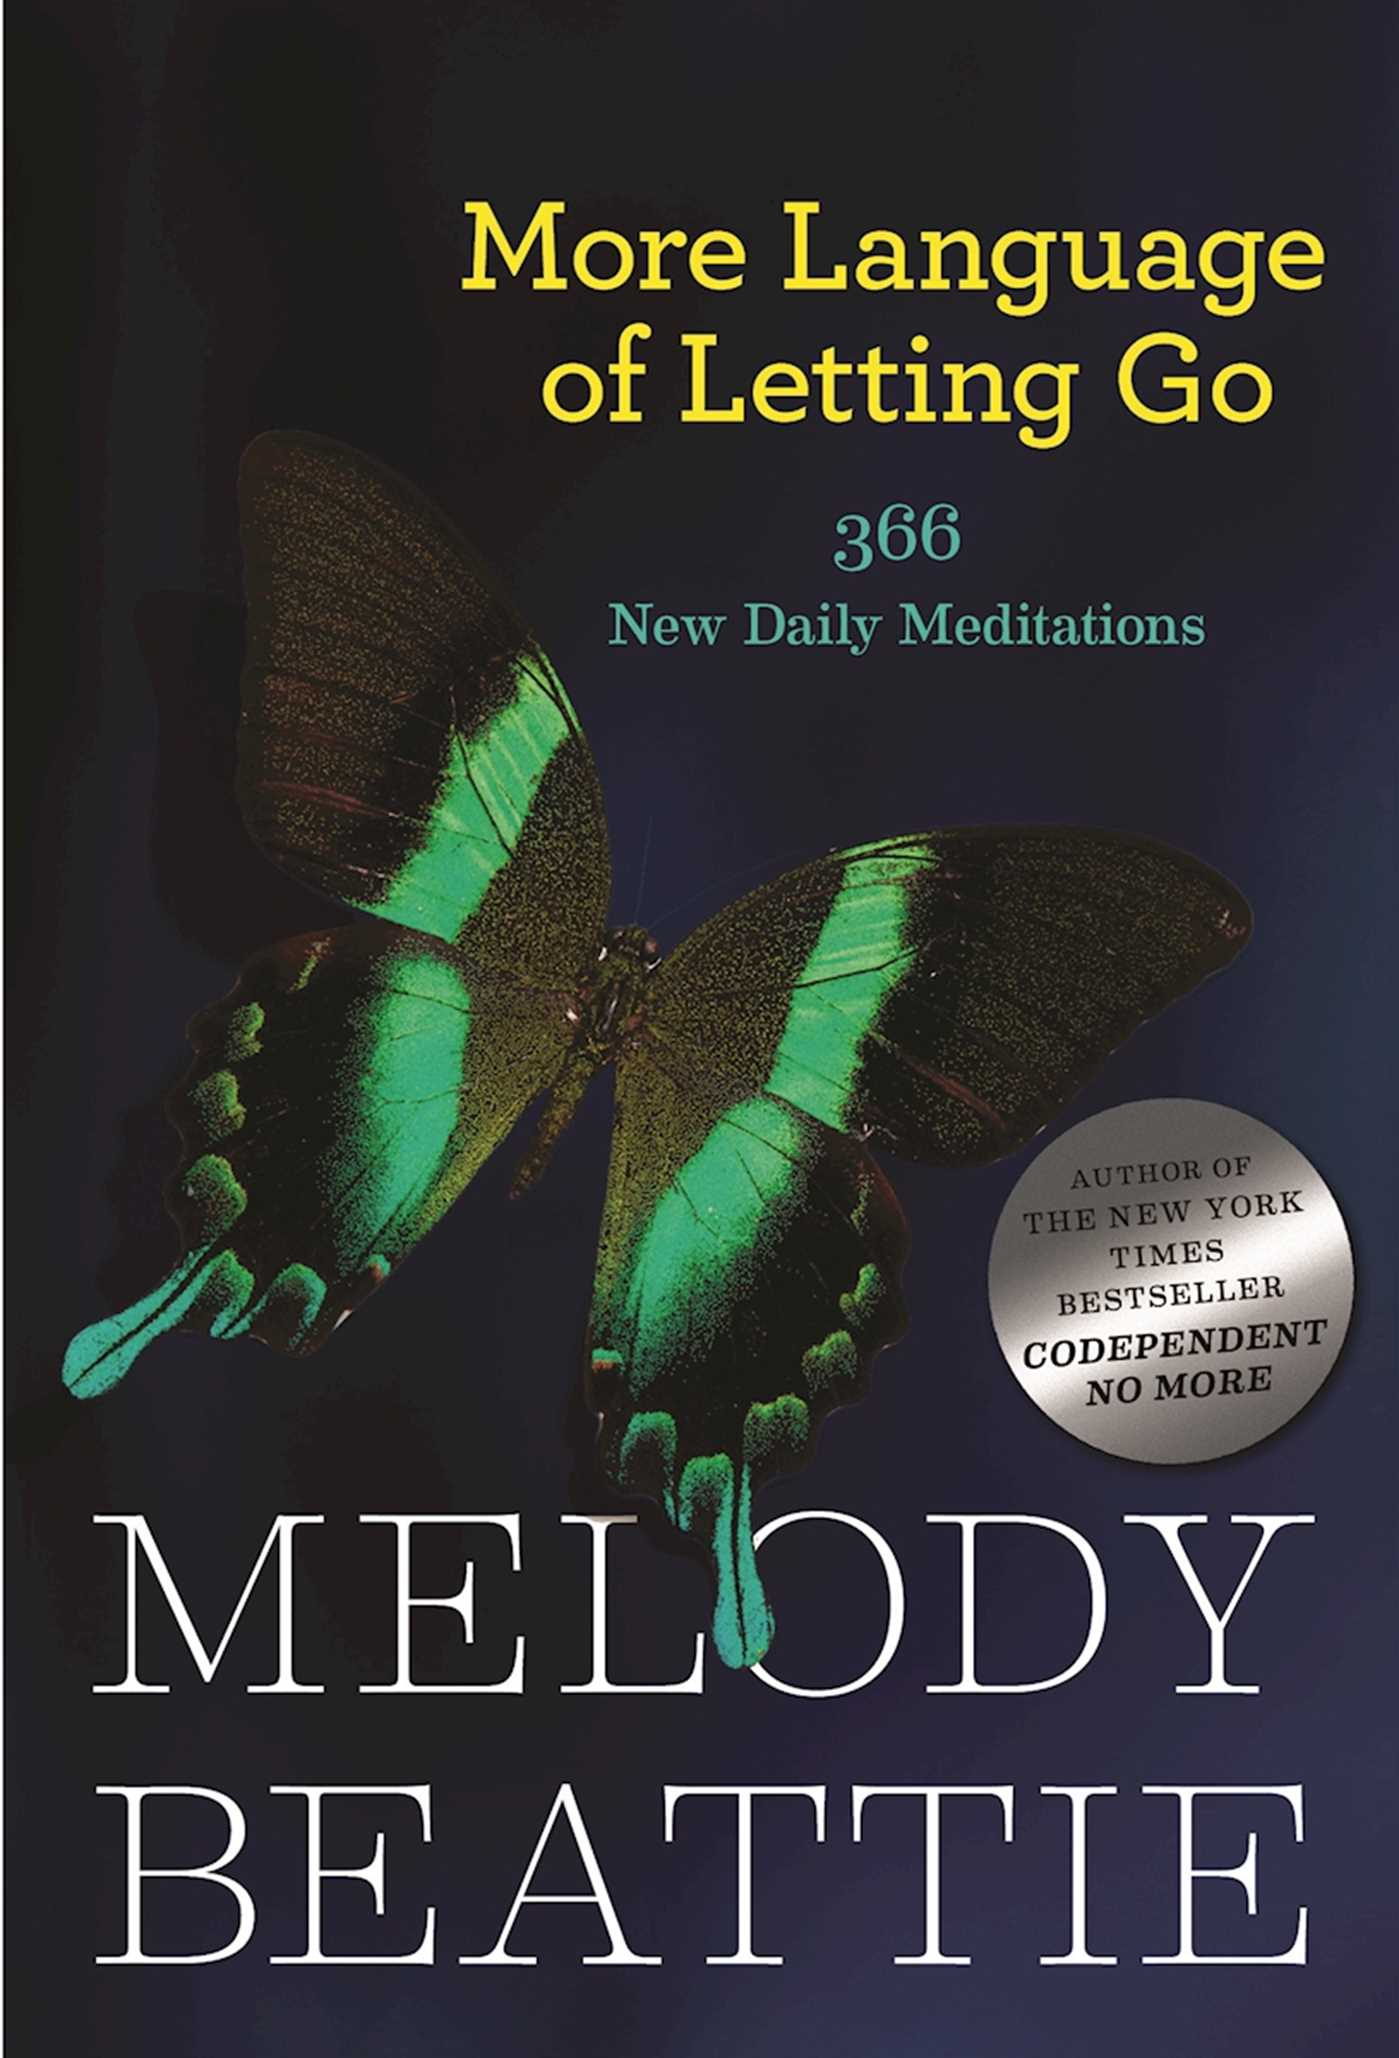 Book Cover Image (jpg): More Language of Letting Go